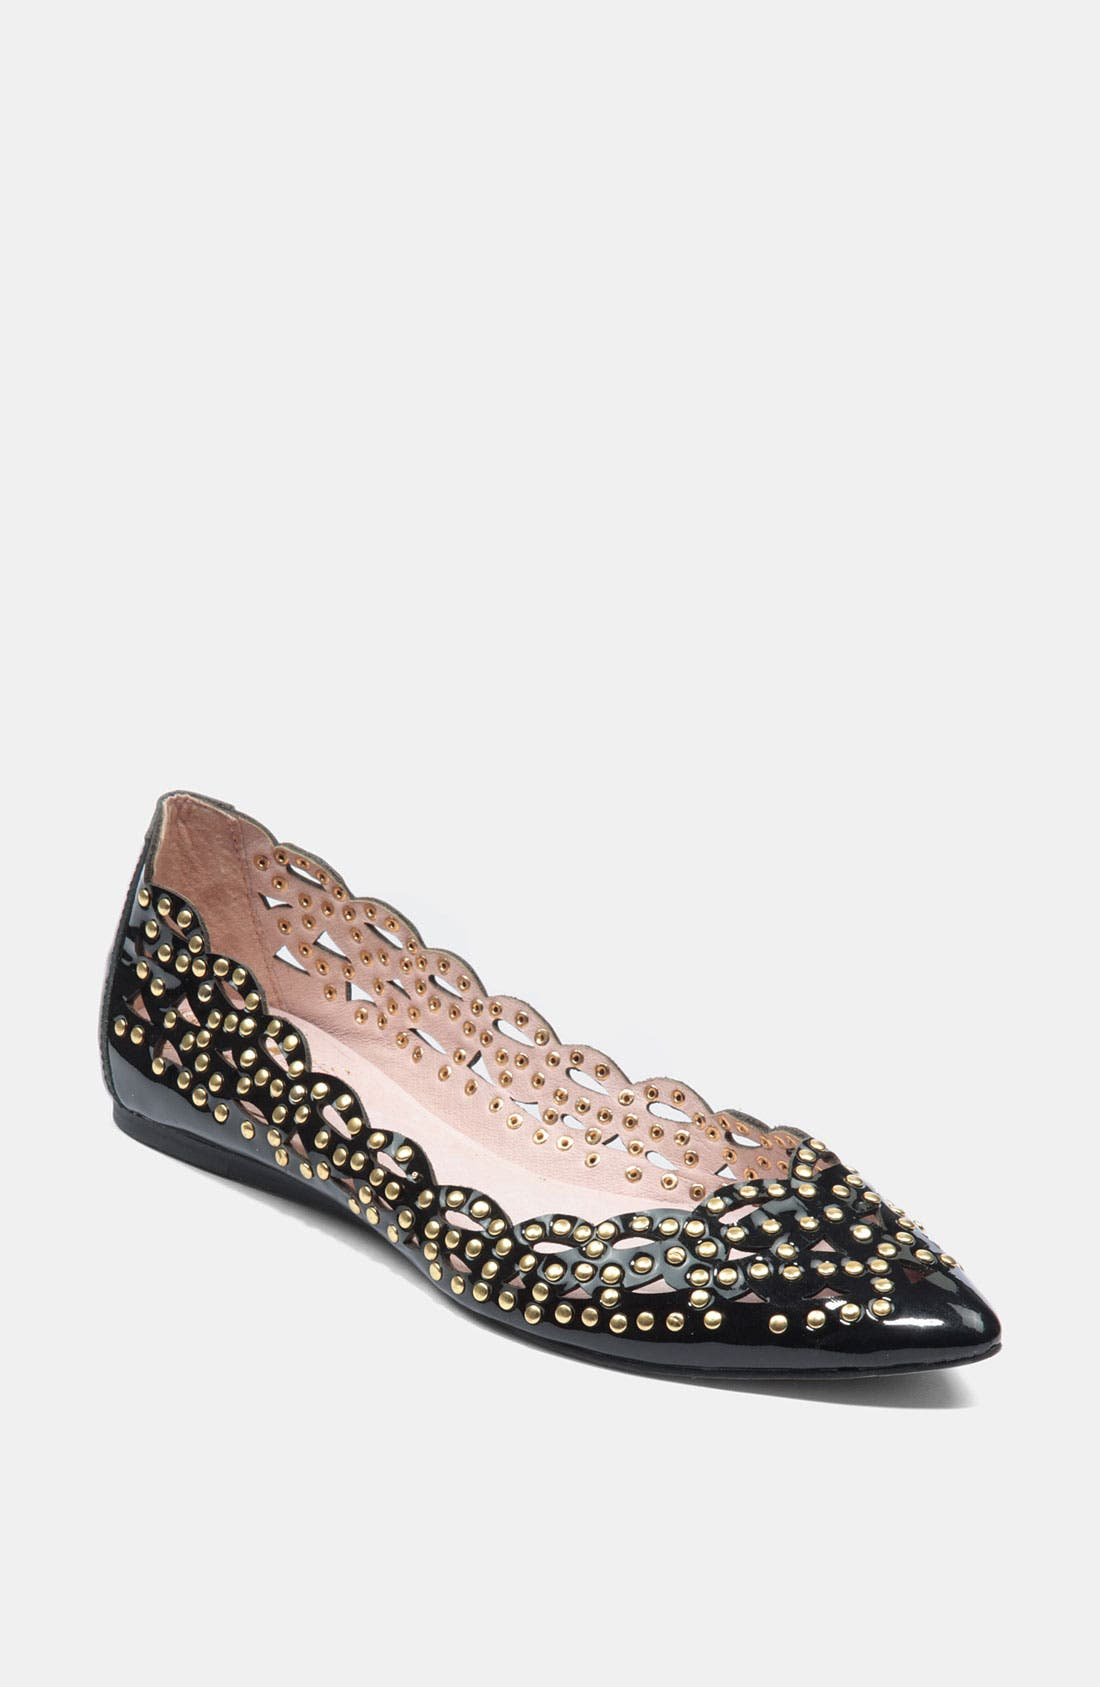 Alternate Image 1 Selected - Vince Camuto 'Tamma' Flat